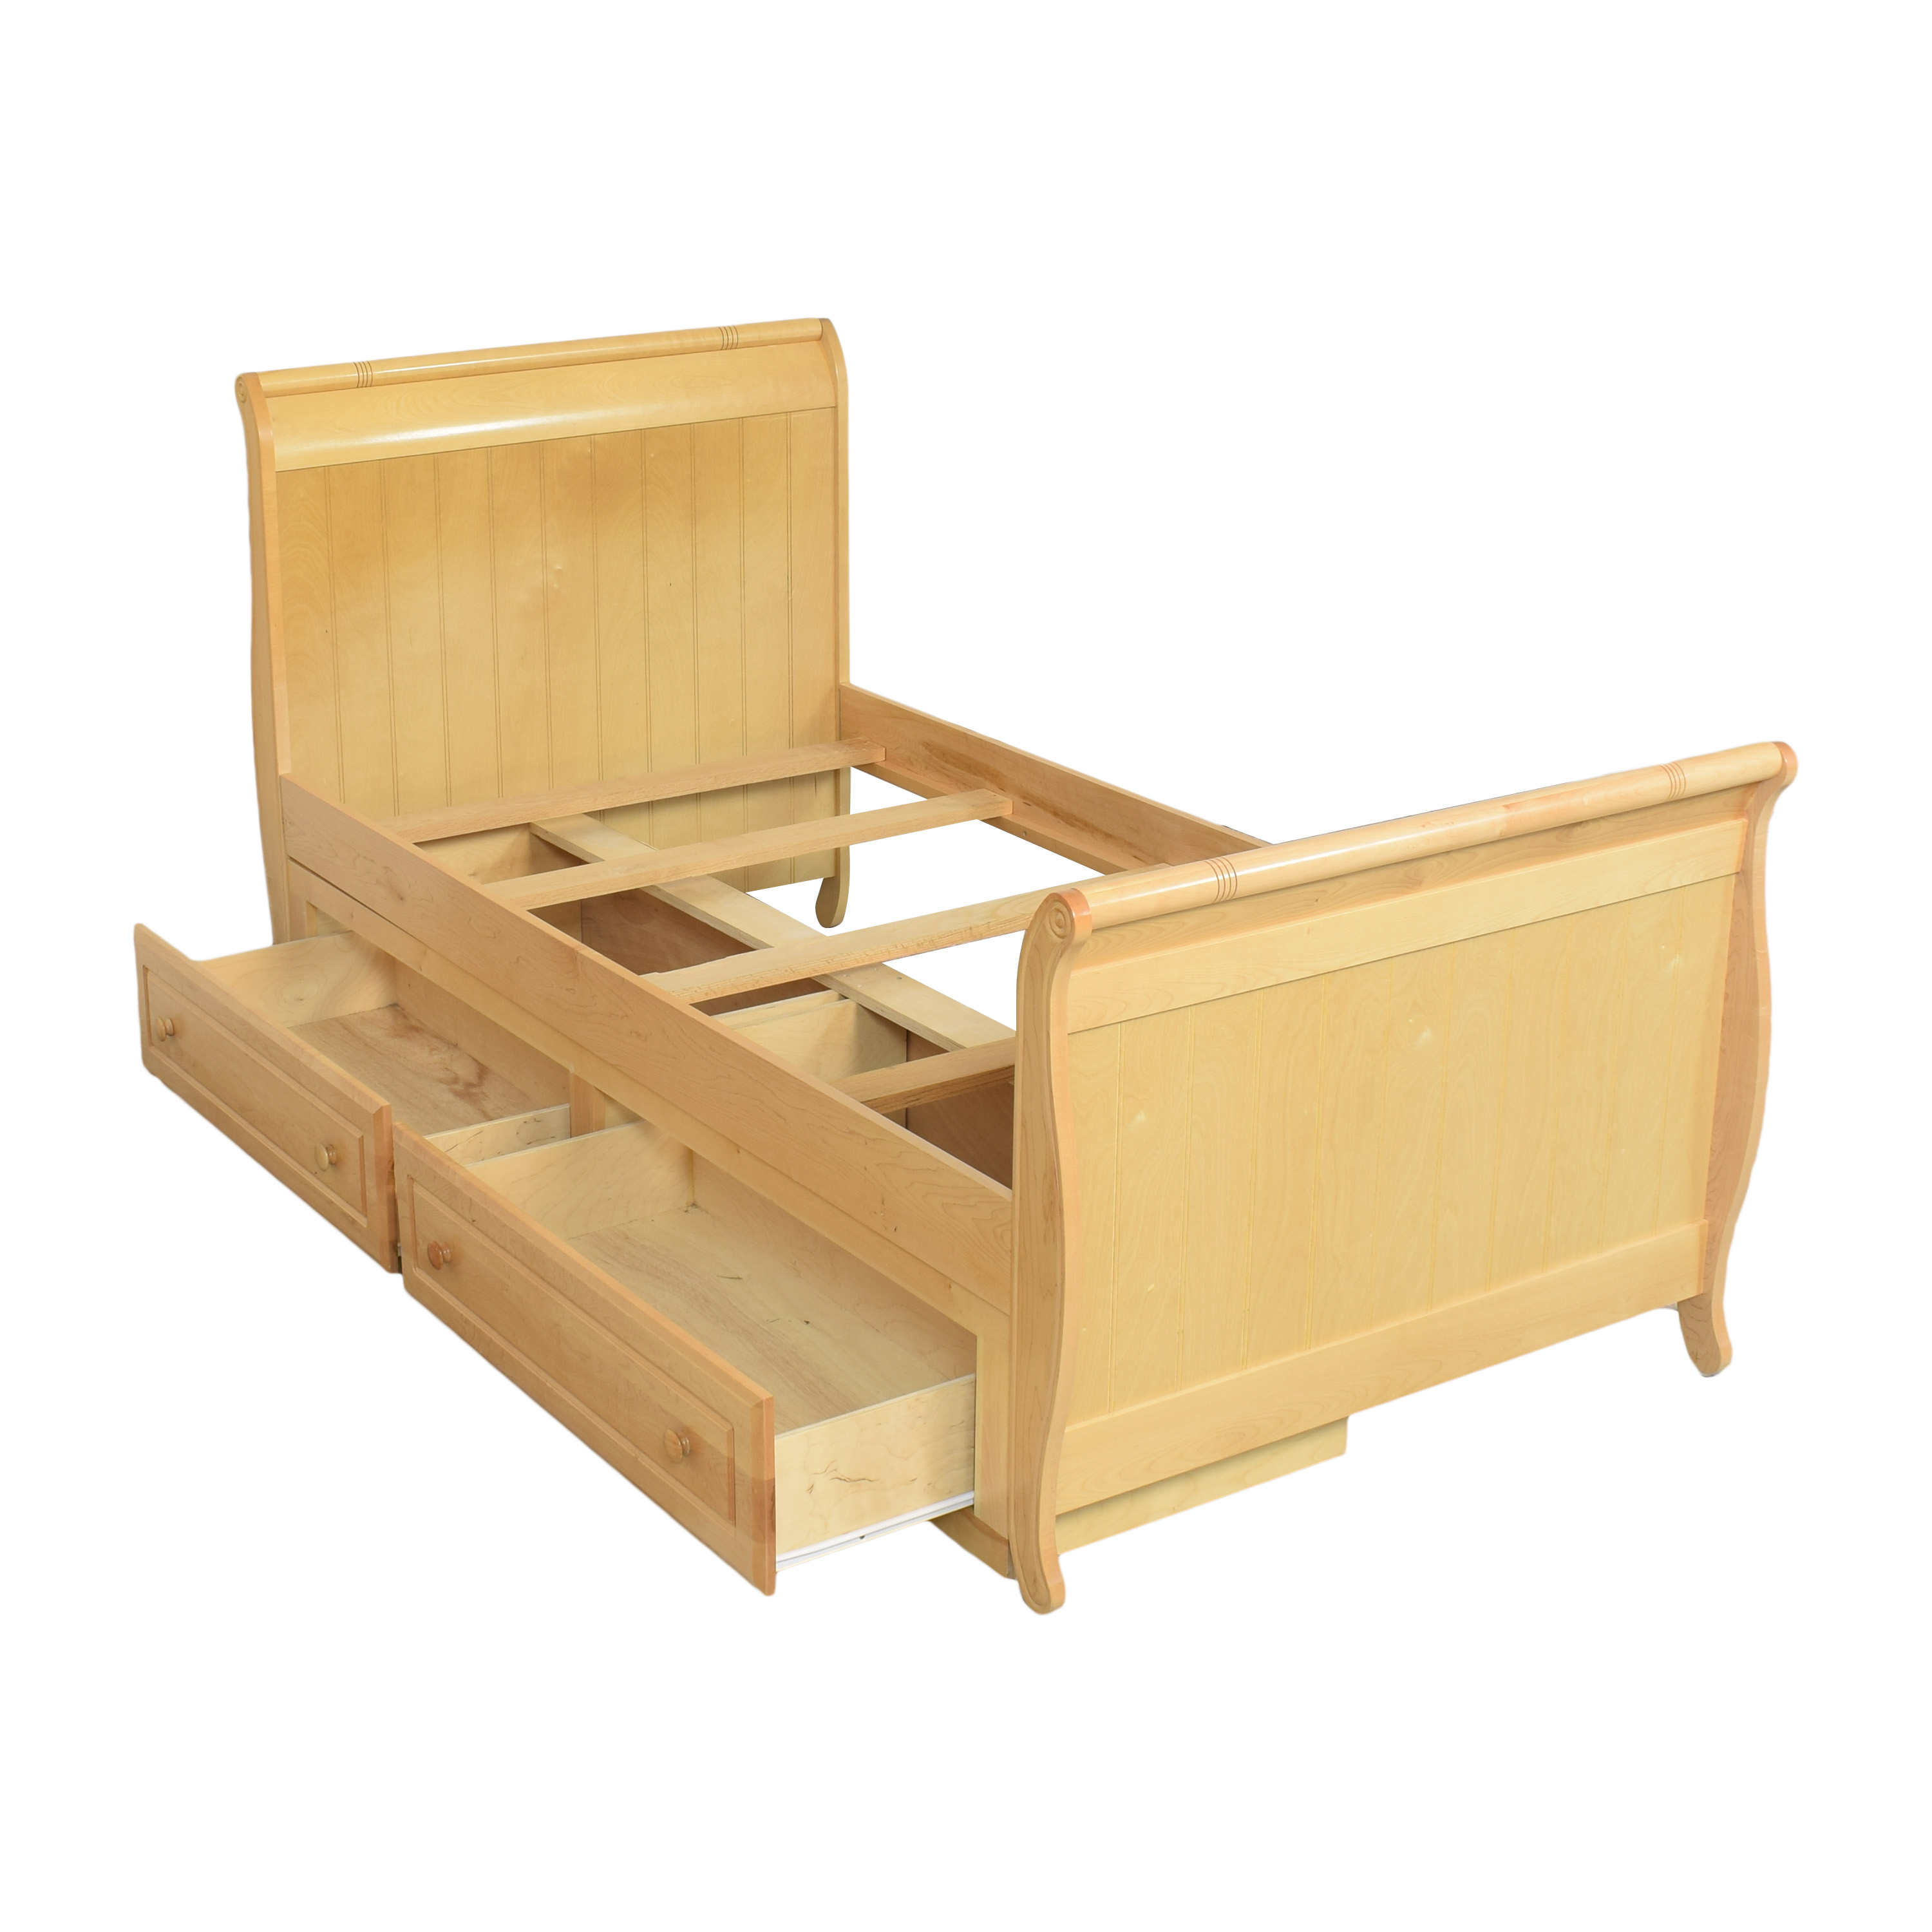 Stanley Furniture Young America Twin Sleigh Bed with Storage Stanley Furniture